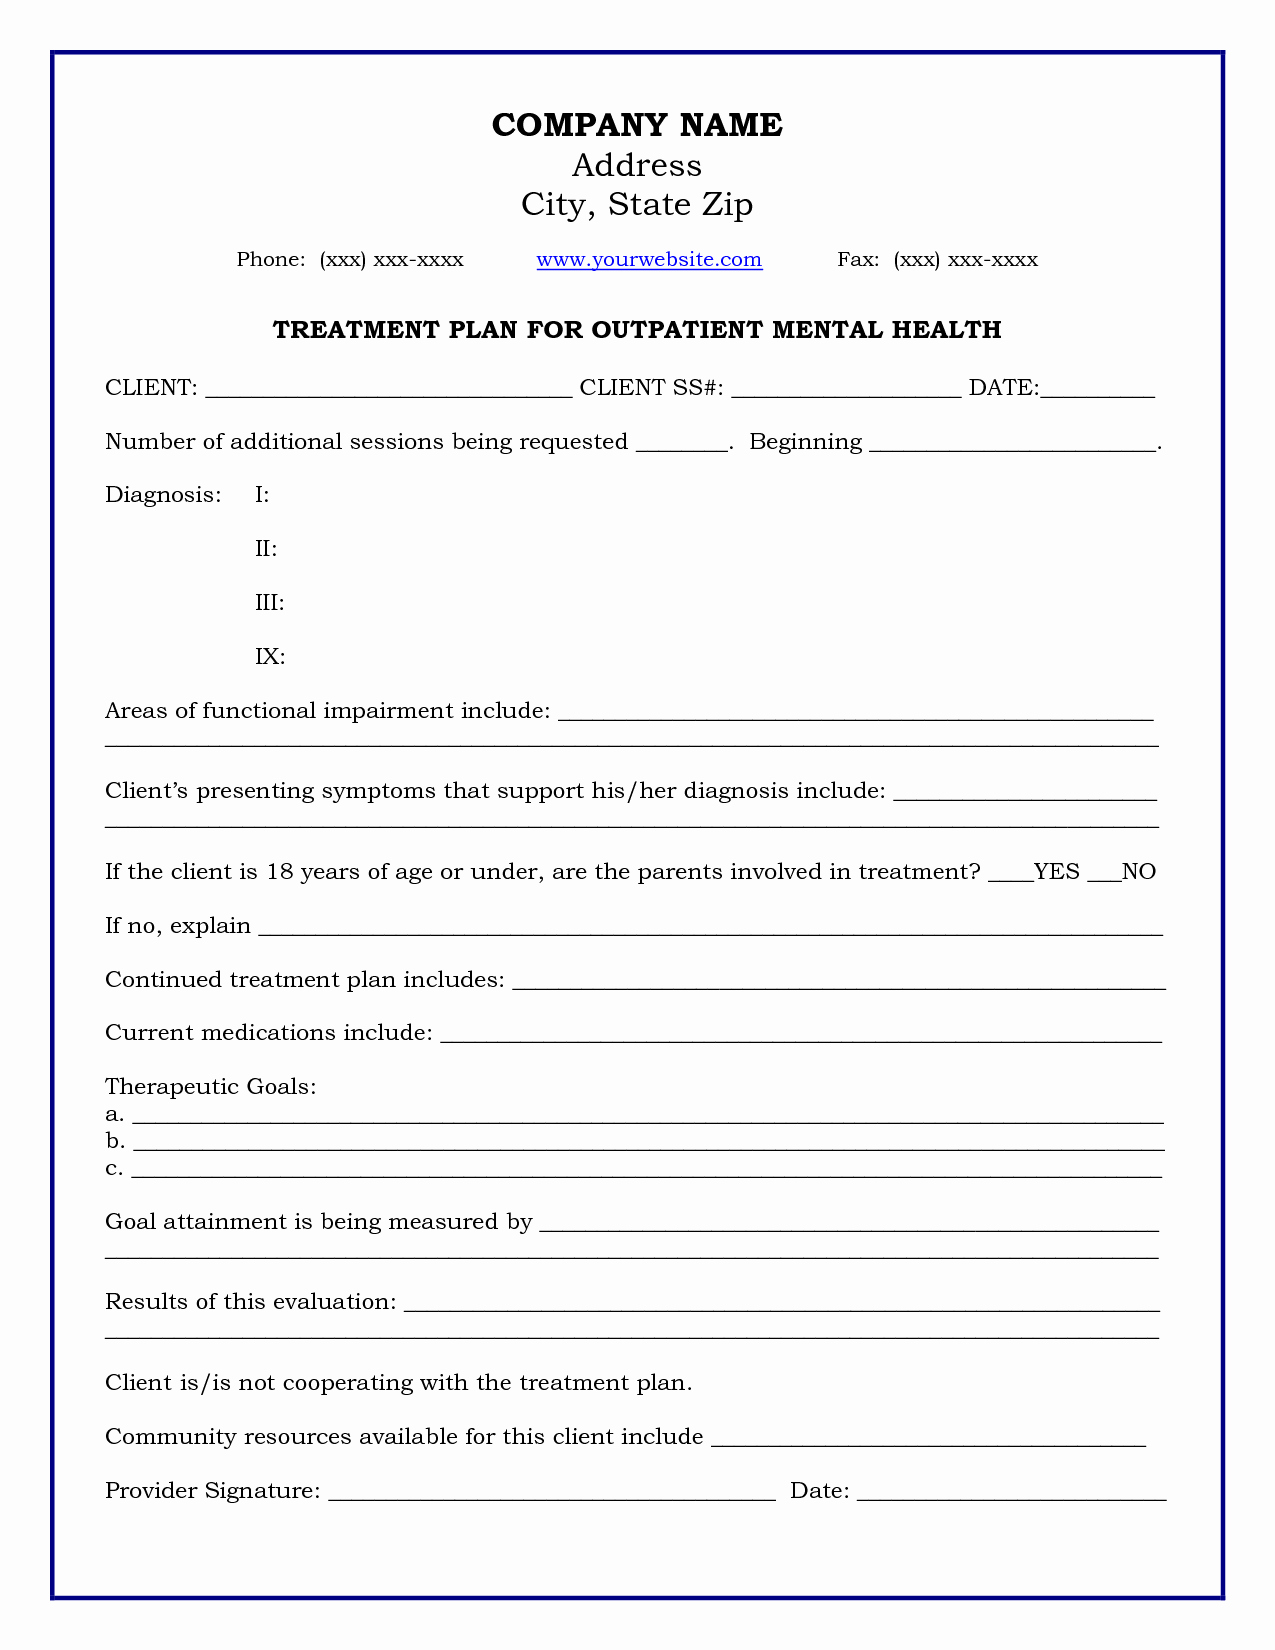 Mental Health Confidentiality Agreement Template Lovely Treatment Plan Template